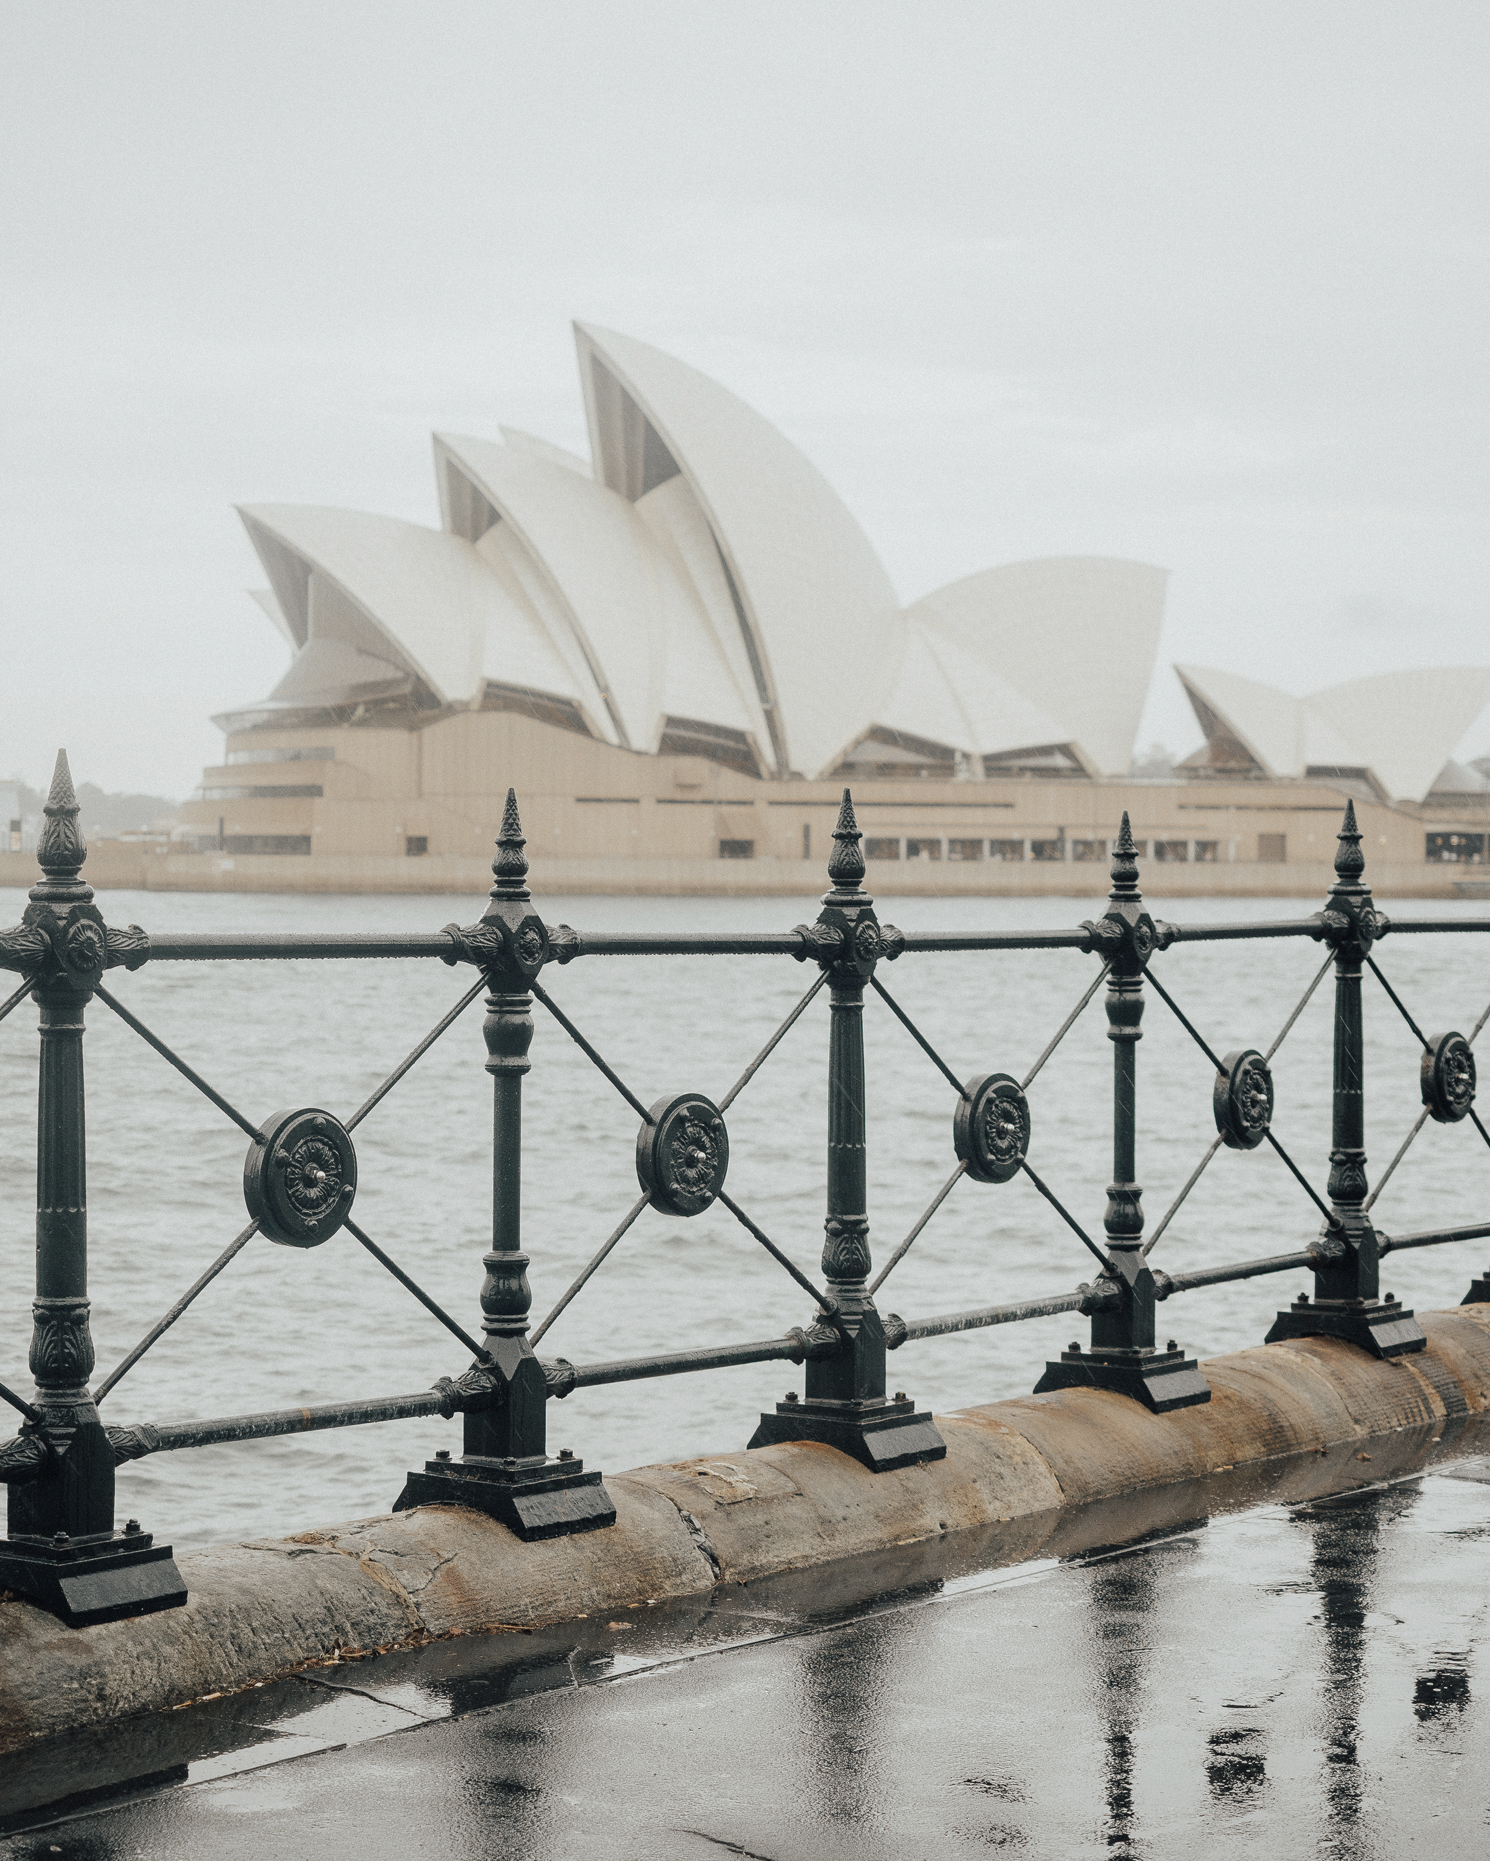 TRAVEL GUIDES - Keep up-to-date with all my latest Australian-based travel guides.